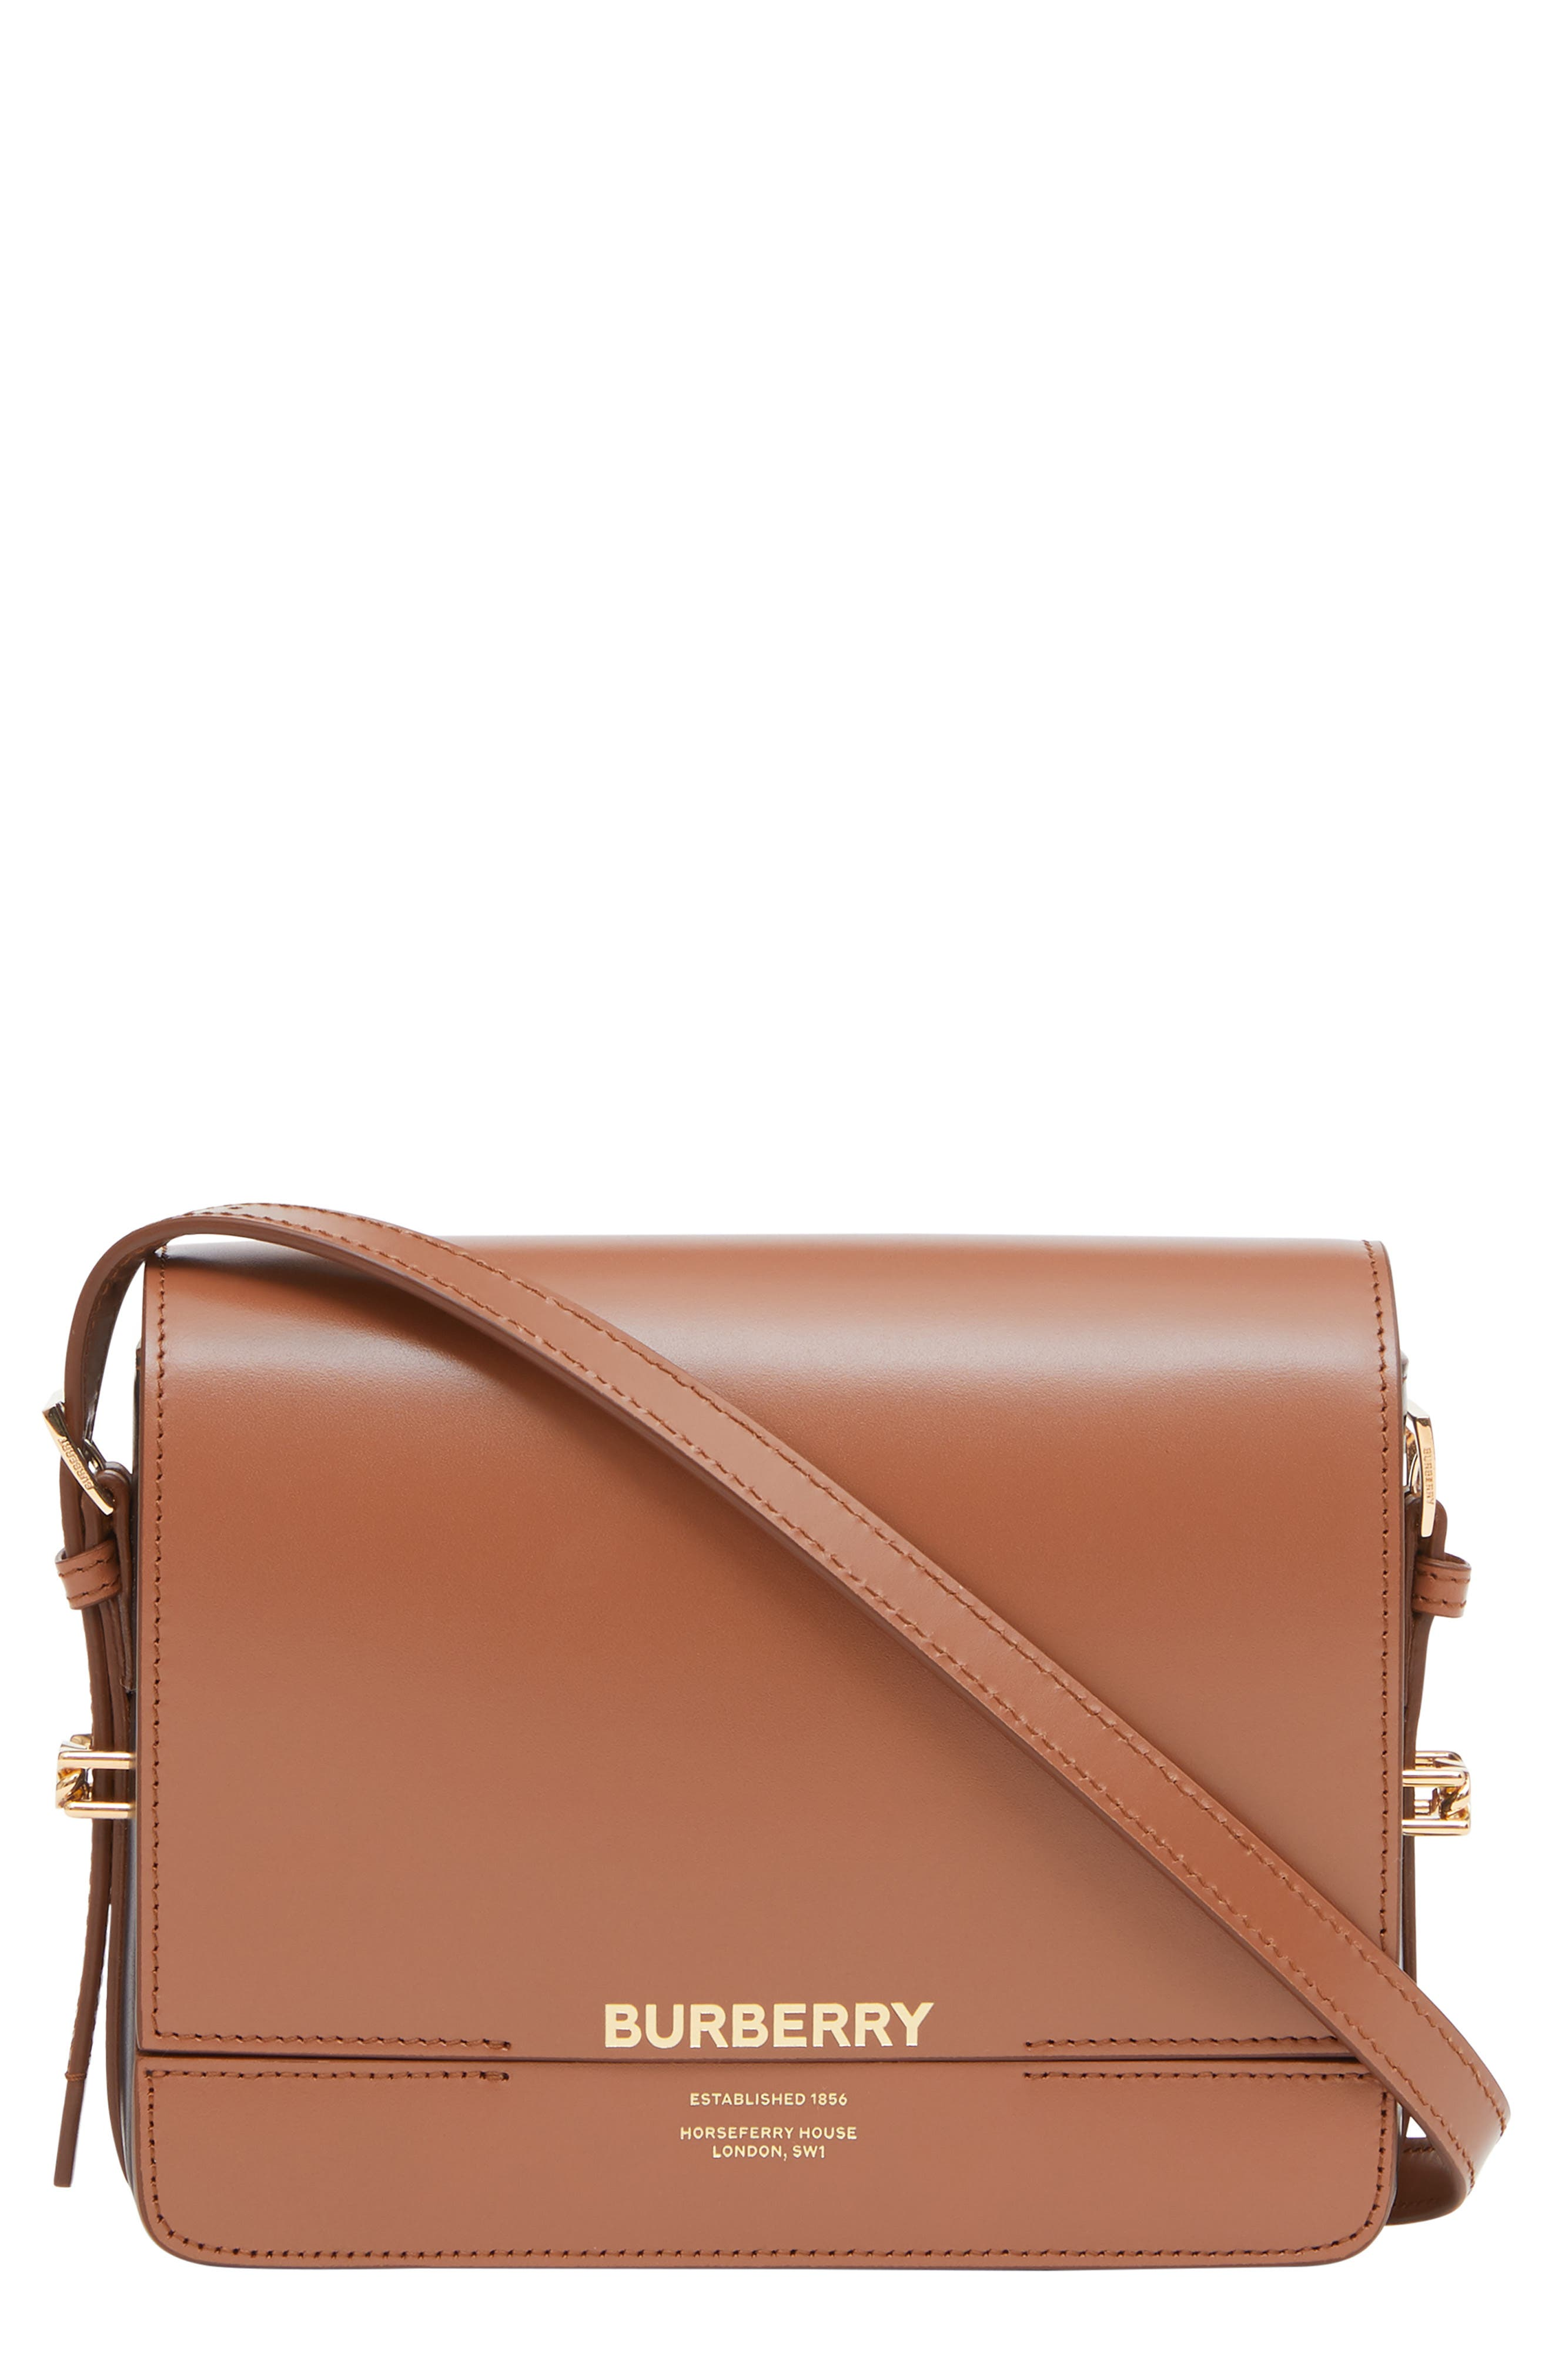 604010960c4 Burberry Small Grace Colorblock Leather Bag - Brown